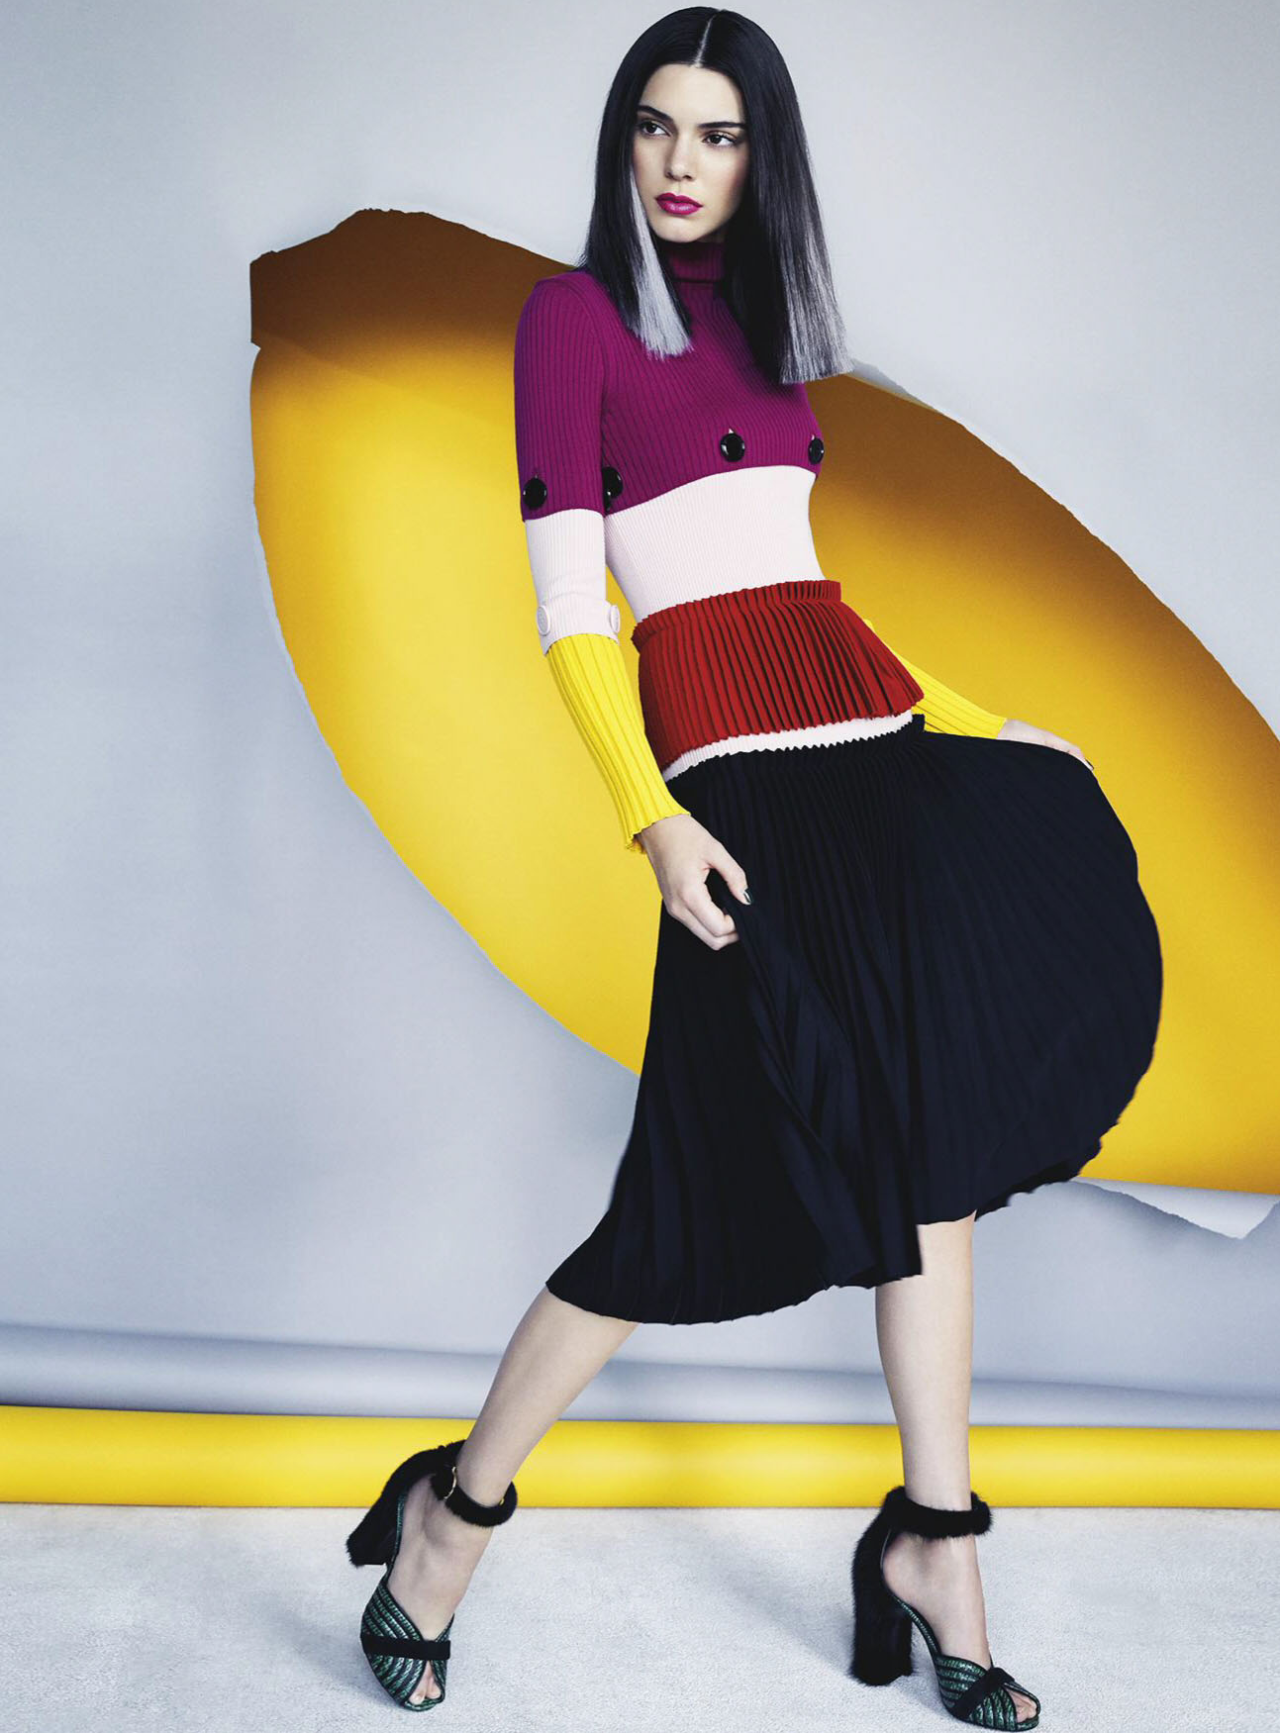 kendall-jenner-by-patrick-demarchelier-7